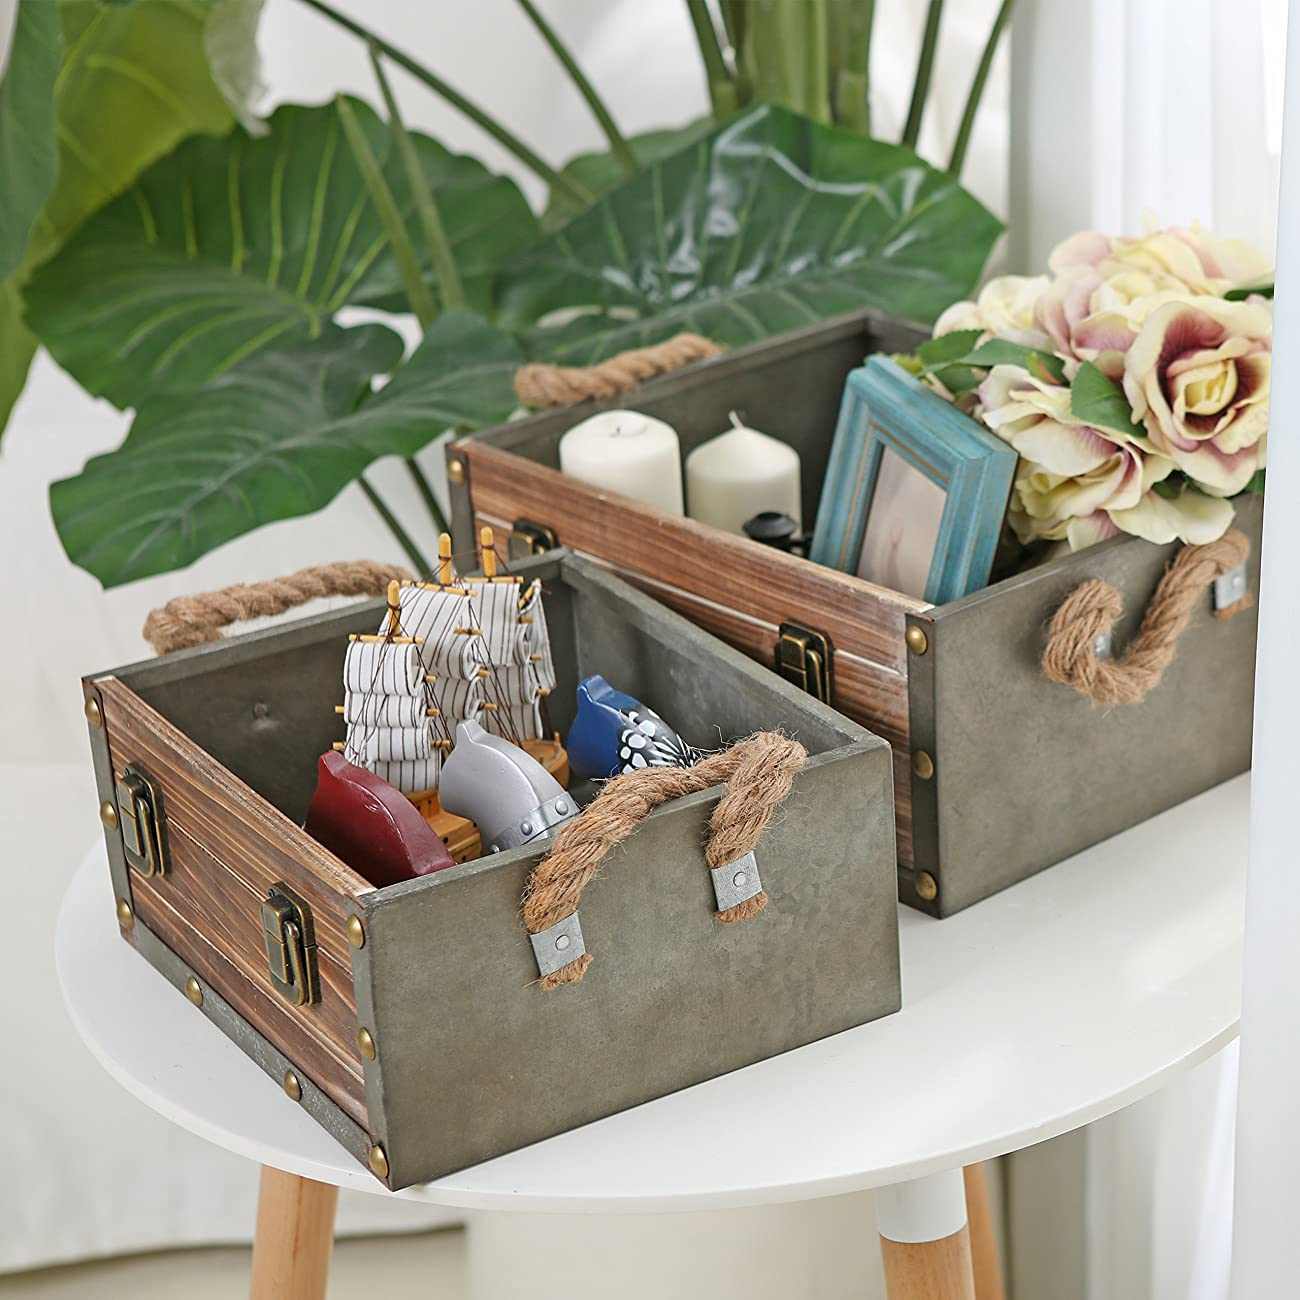 MyGift Set of 2 Wood Crates w/ Rope Handles, Rustic Nesting Storage Boxes, Brown 2